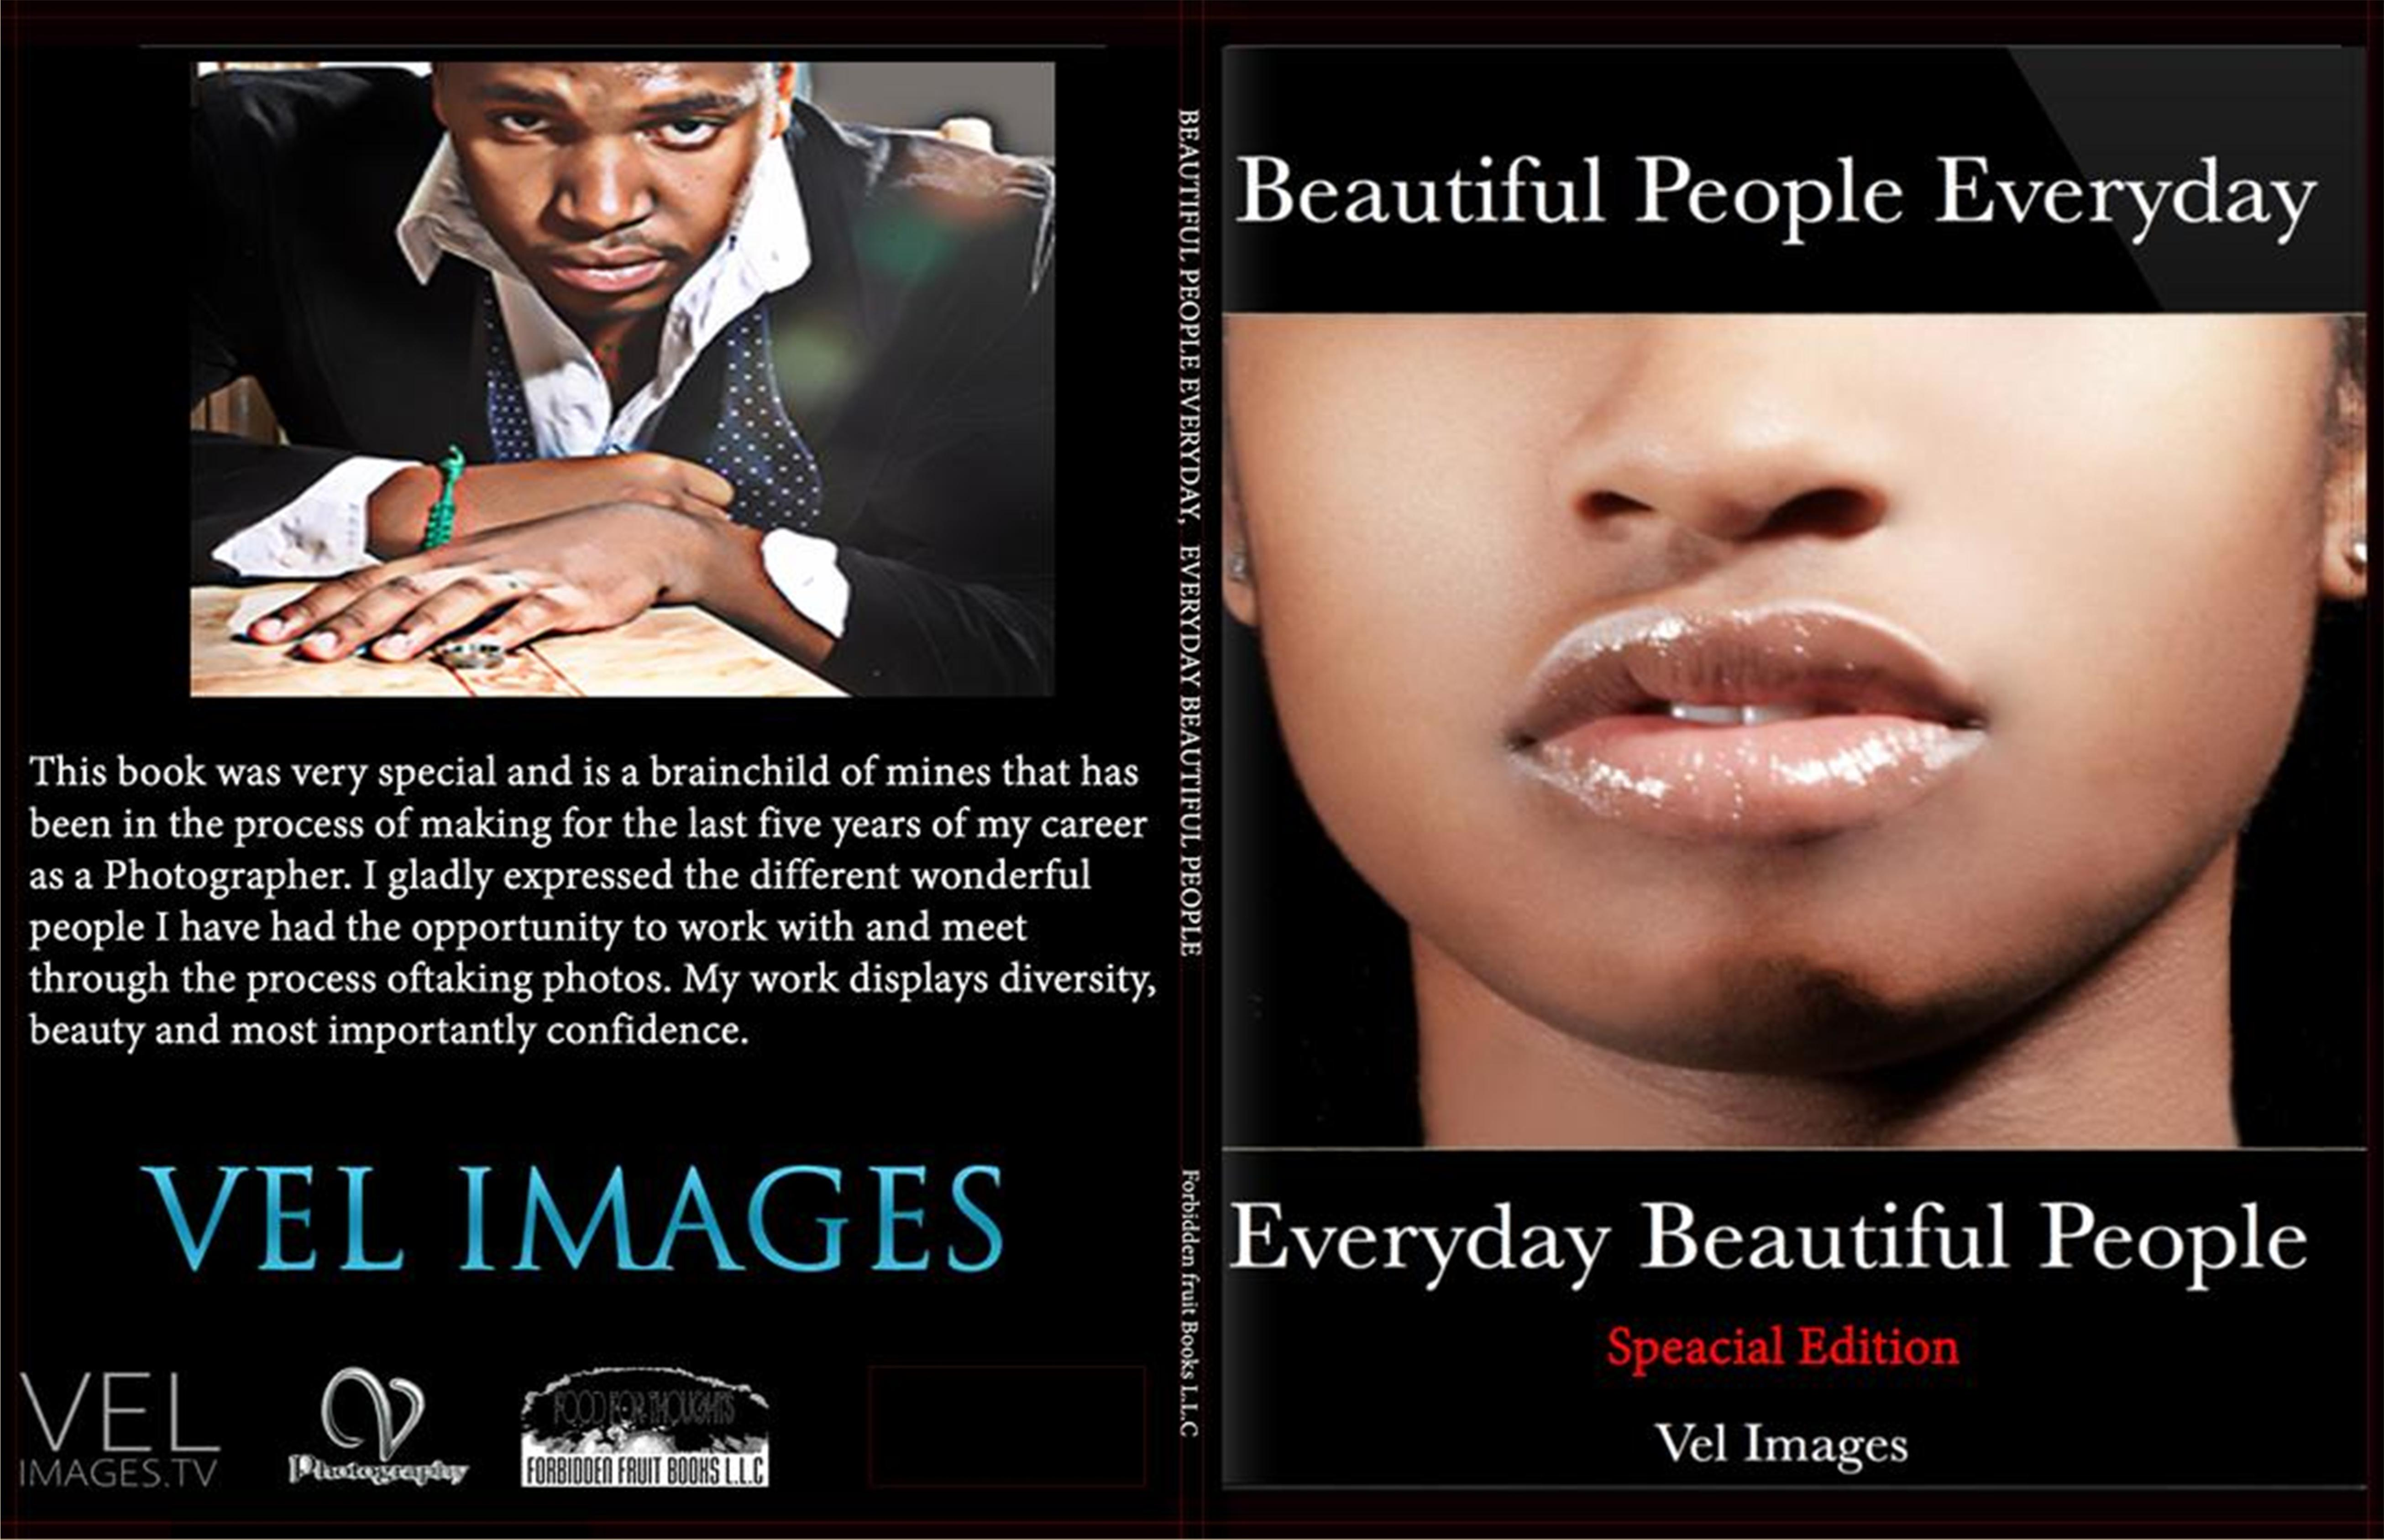 Beautiful People Everyday, Everyday Beautiful People cover image